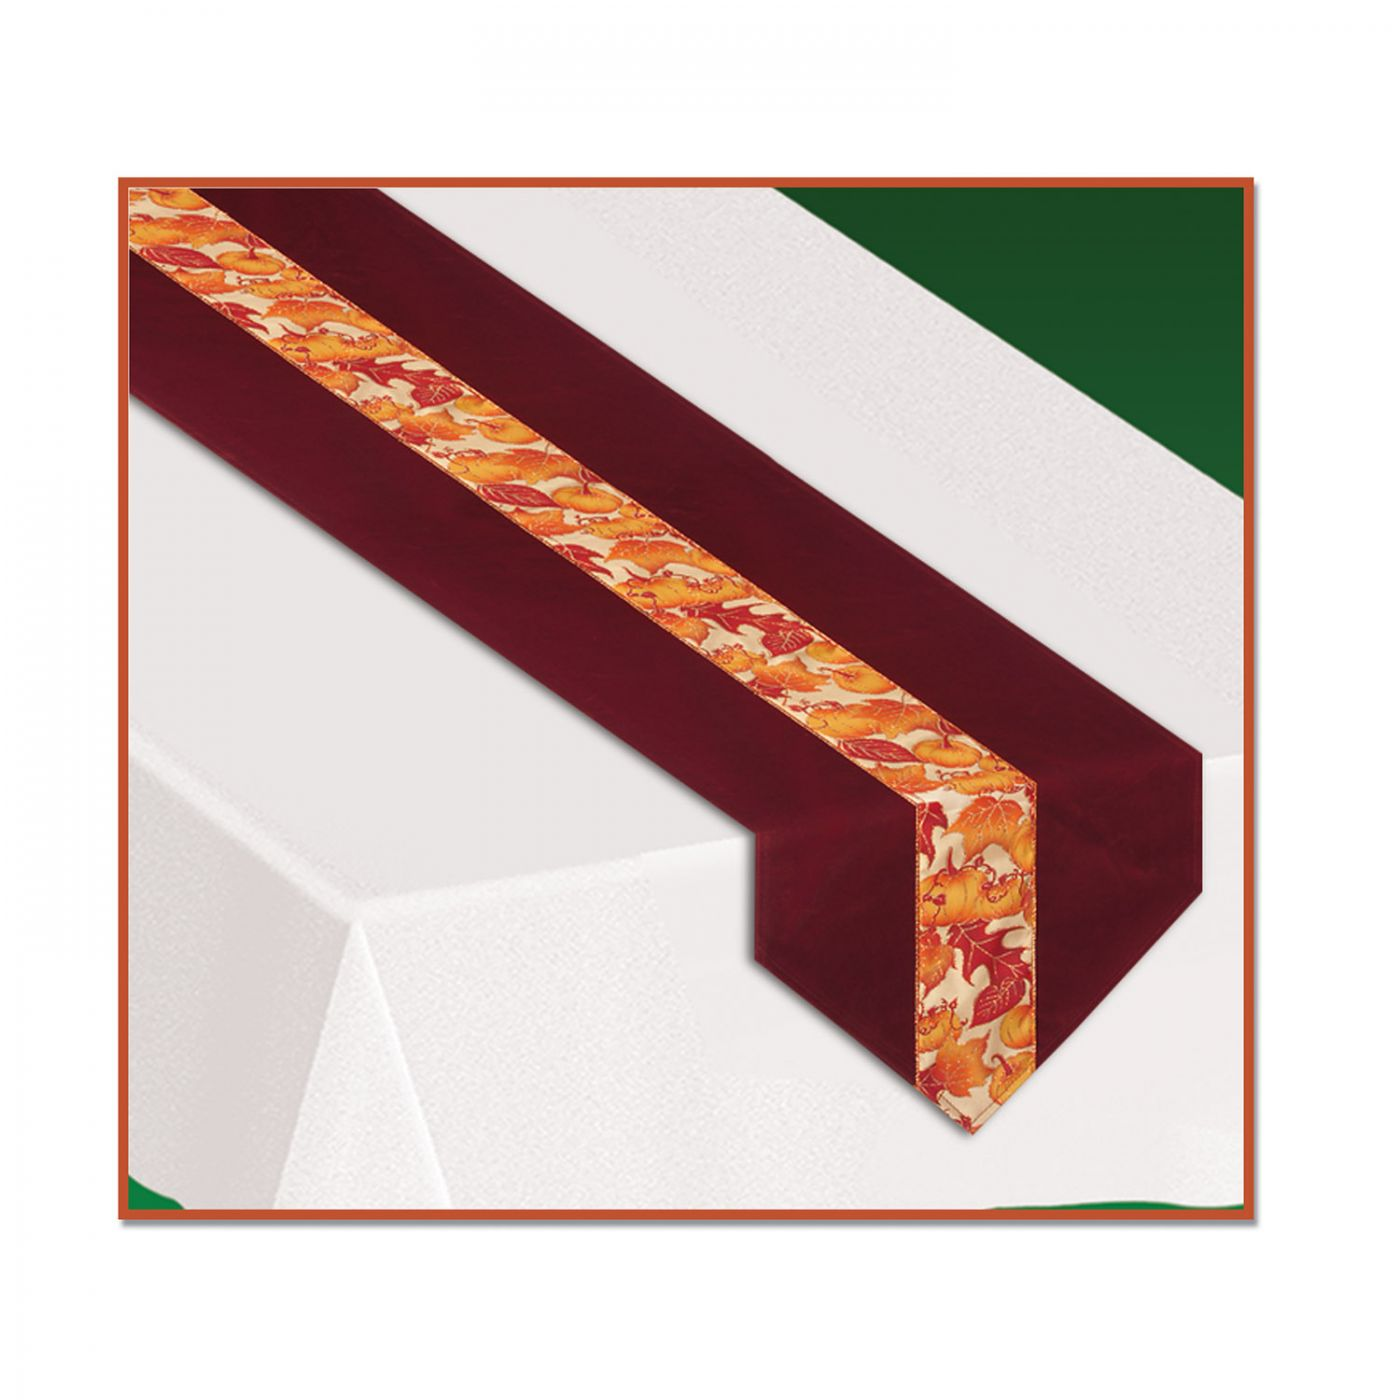 Image of Autumn Leaves Fabric Table Runner (6)